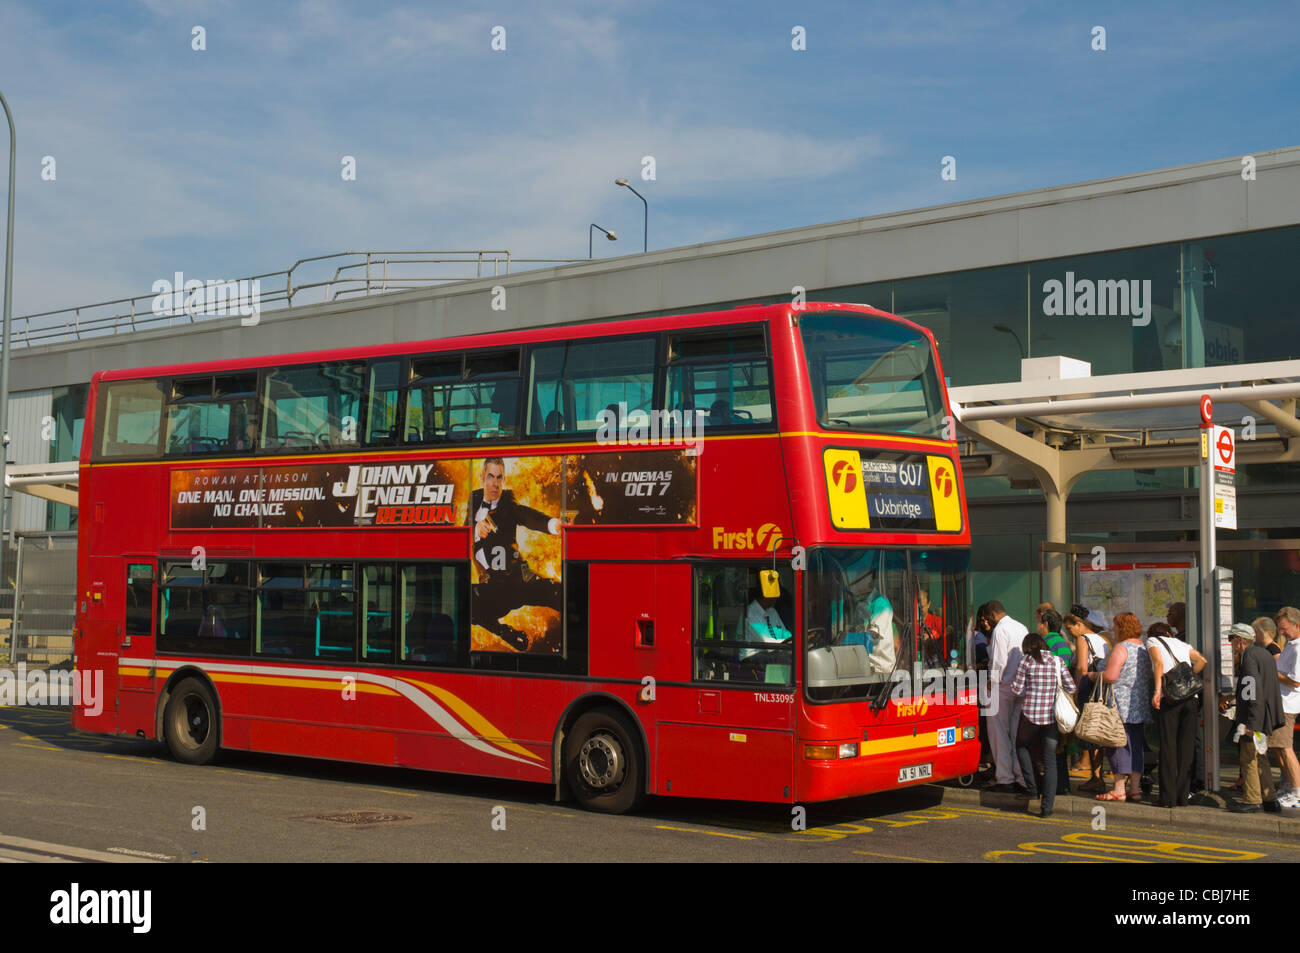 Bus at bus station in Shepherd's Bush district west London England UK Europe - Stock Image